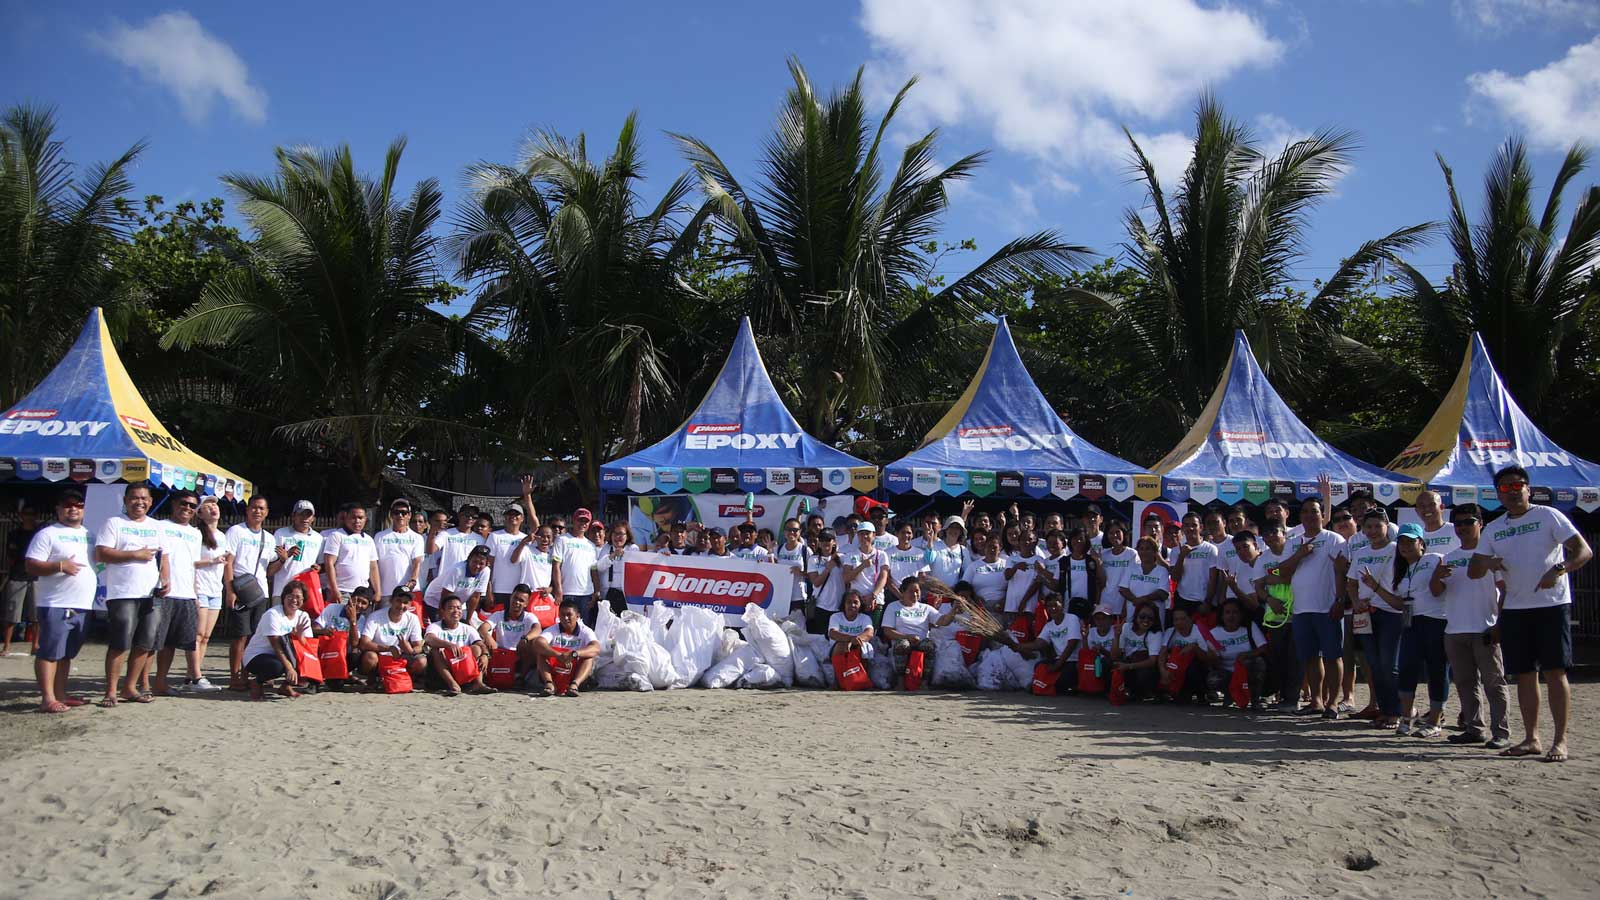 Pioneer hosts beach clean-up event in Iloilo City